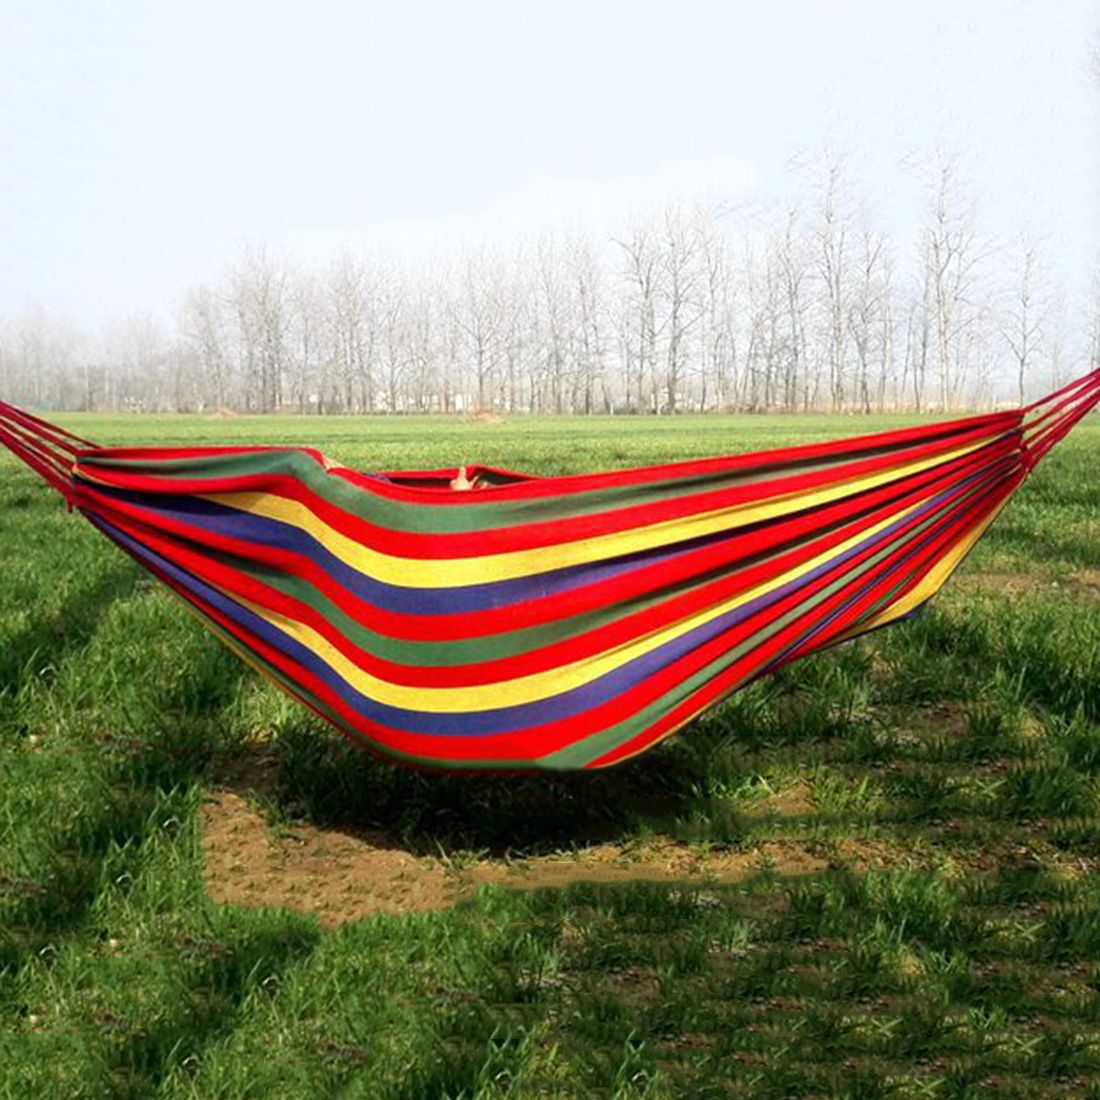 Camping & Hiking Outdoors Portable Camping Parachute Sleeping Double Hammock Garden Swing Hammock Hanging Bed Travel Camping Swing Canvas Stripe